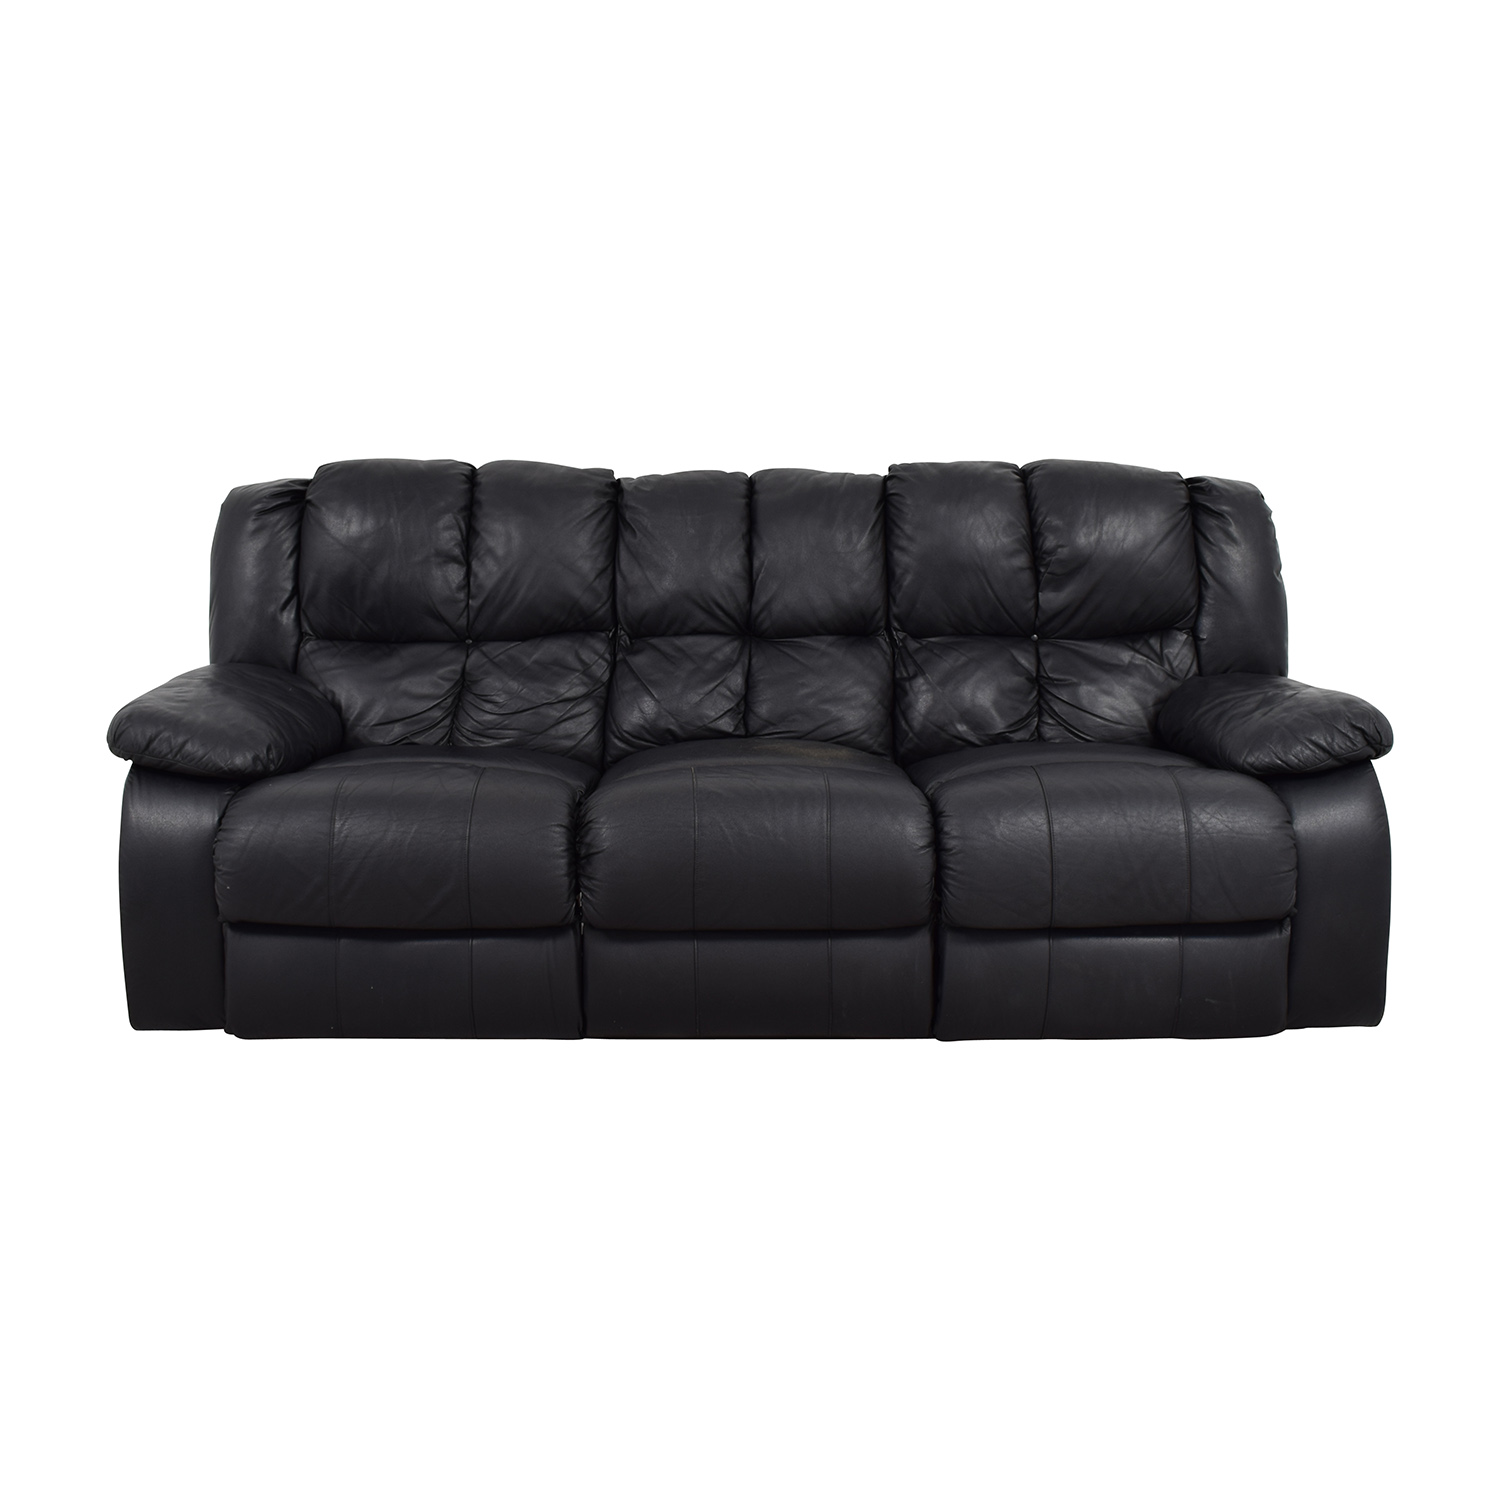 buy Raymour & Flanigan Three-Seat Leather Sofa Raymour and Flanigan